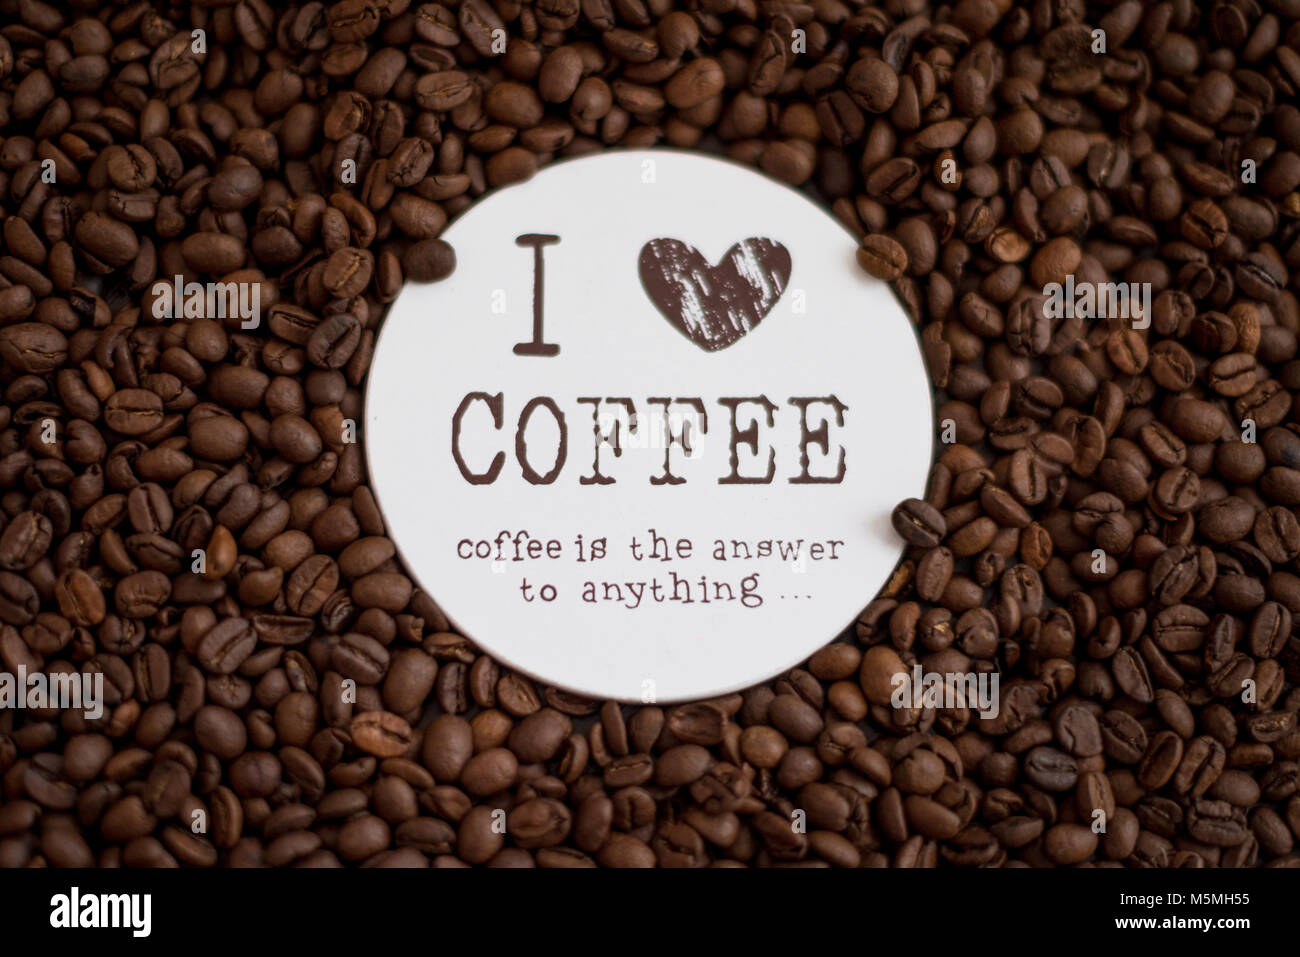 Coffee beans on table with sign I love coffee. - Stock Image